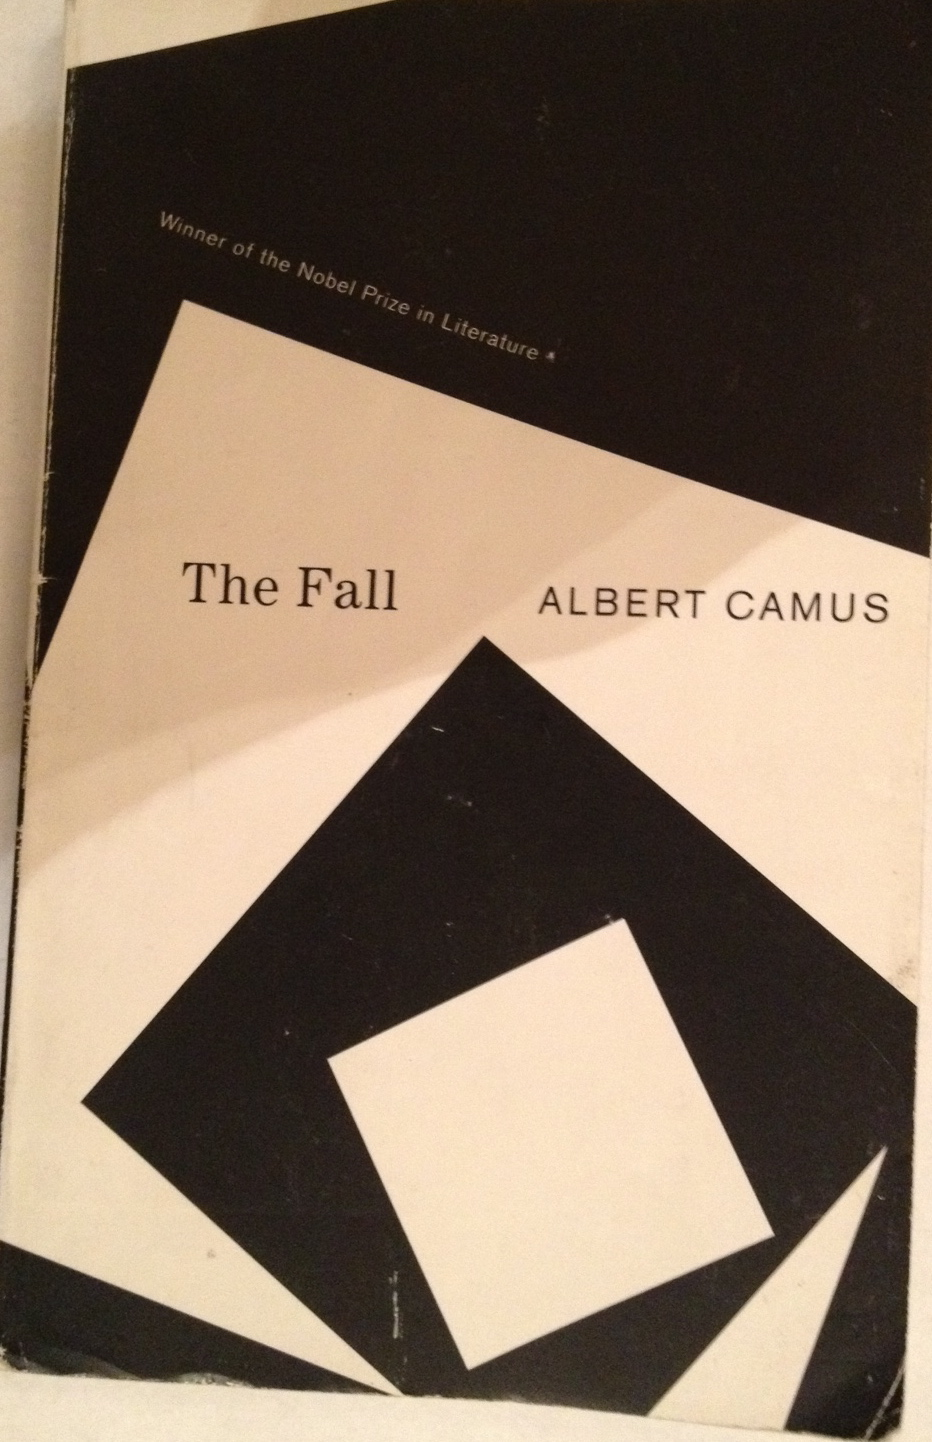 the stranger by albert camus research paper Part of a detailed lesson plan by bookragscomdissertation on female knee injuries the stranger essays research the stranger essays dualisms in albert camus.